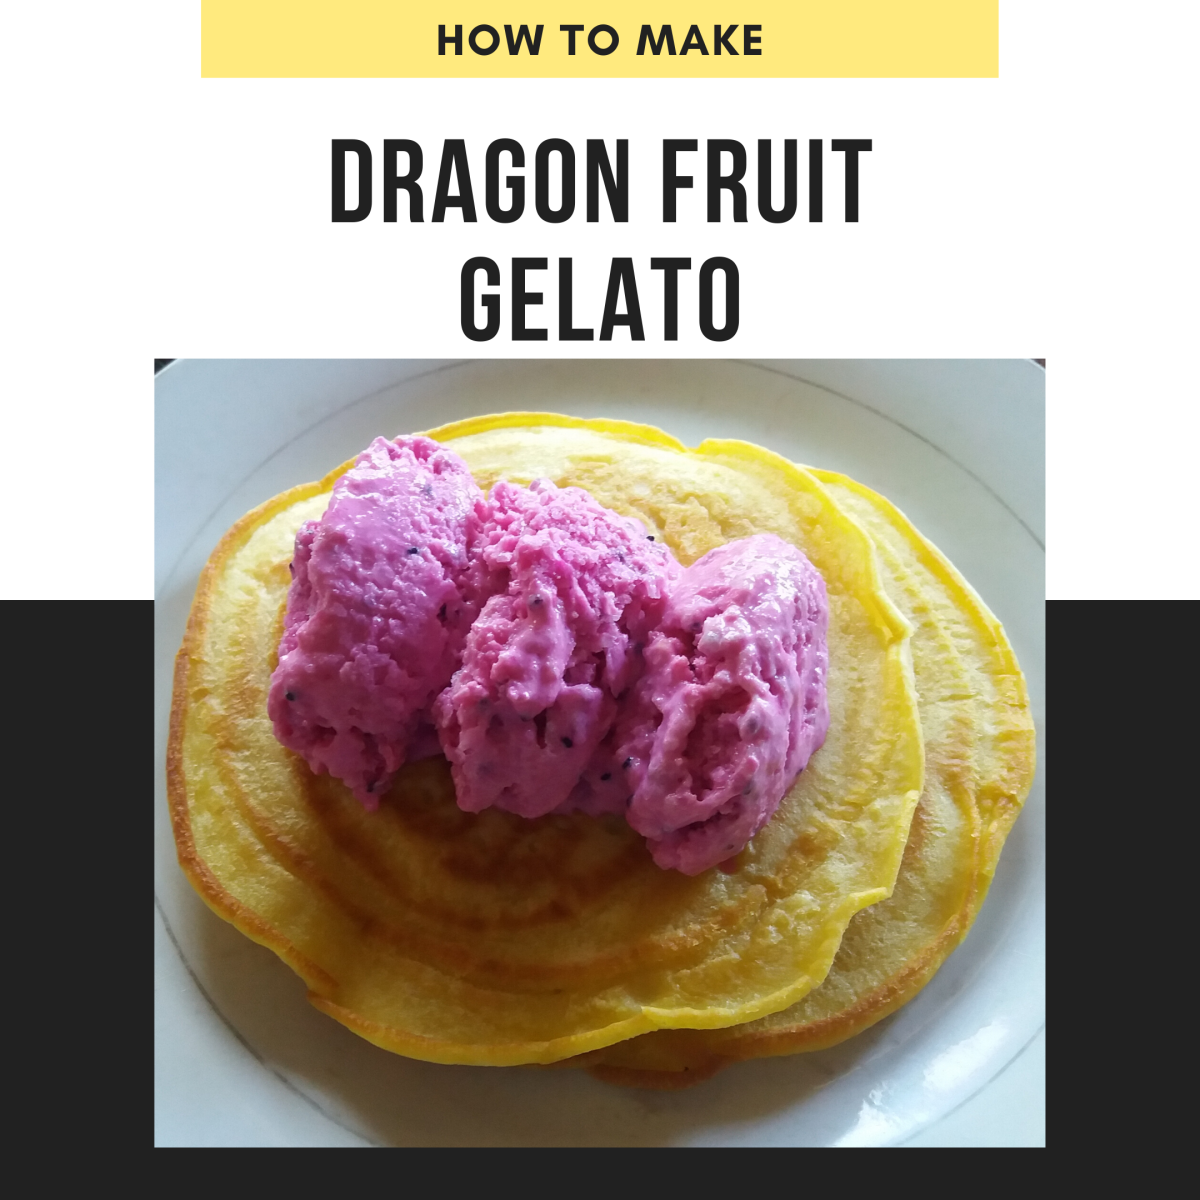 Dragon fruit gelato